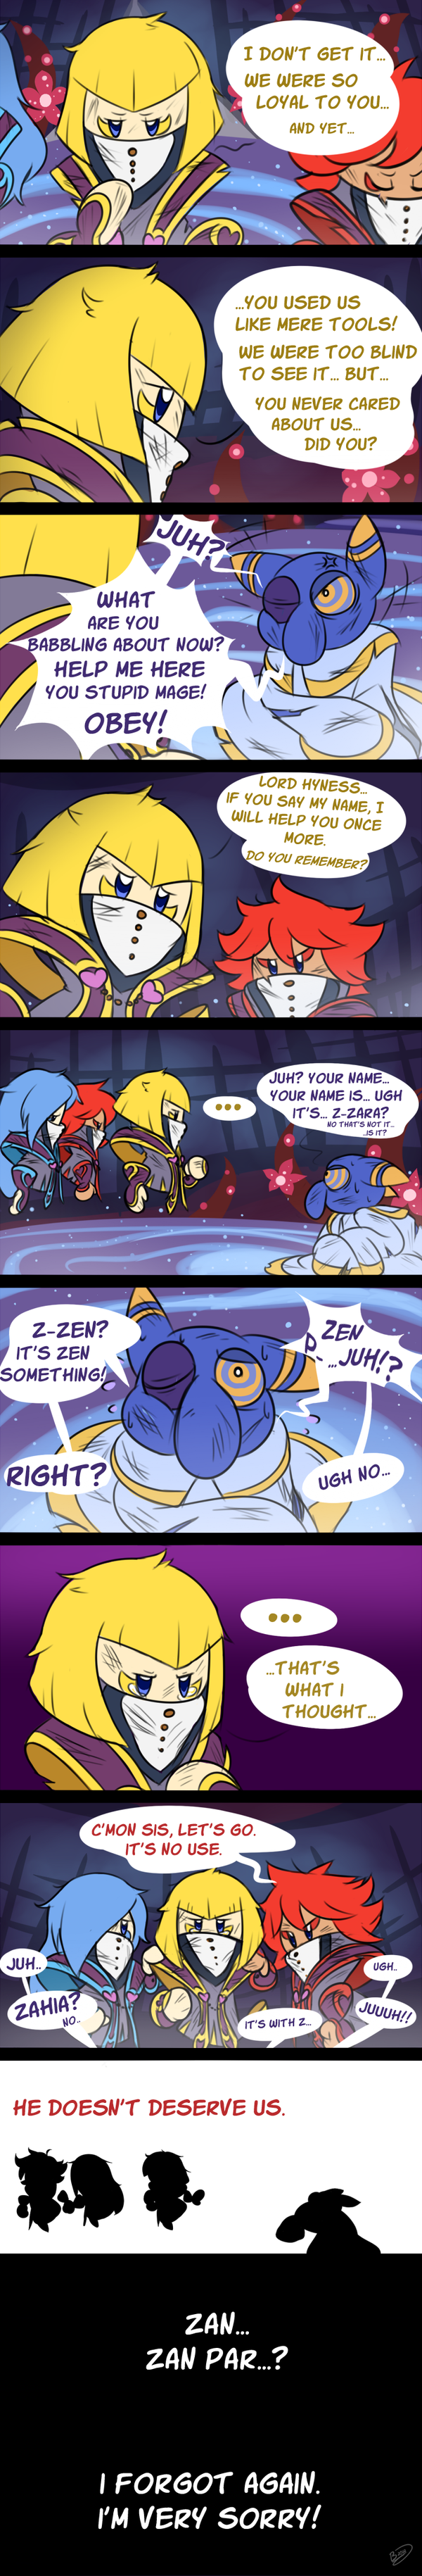 1boy 3girls absurdres after_battle altar anger_vein black_eye blonde_hair blue_eyes blue_hair closed_eyes comic commentary covered_mouth crazy_eyes dirty english_commentary flamberge_(kirby) floating flower francisca_(kirby) glaring gold_trim half-closed_eyes highres hyness injury kirby:_star_allies kirby_(series) light_particles long_hair long_image messy_hair multiple_girls nintendo no_humans one_eye_closed pillar redhead robe sad short_hair signature silhouette spoilers sweat sweatdrop tall_image tears very_long_sleeves white_robe zan_partizanne zieghost